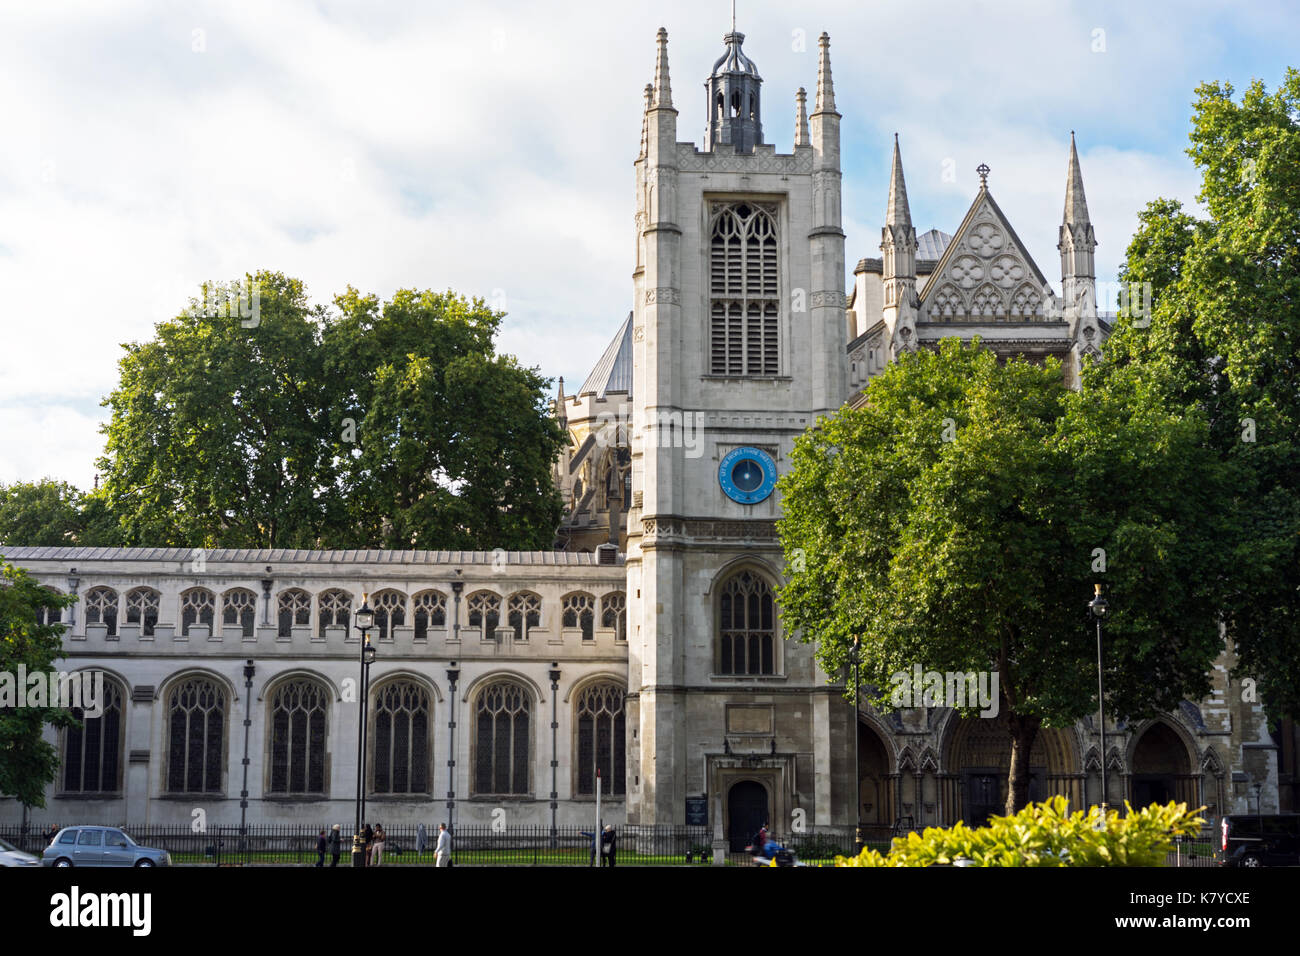 St Margaret's, Westminster Abbey - Stock Image